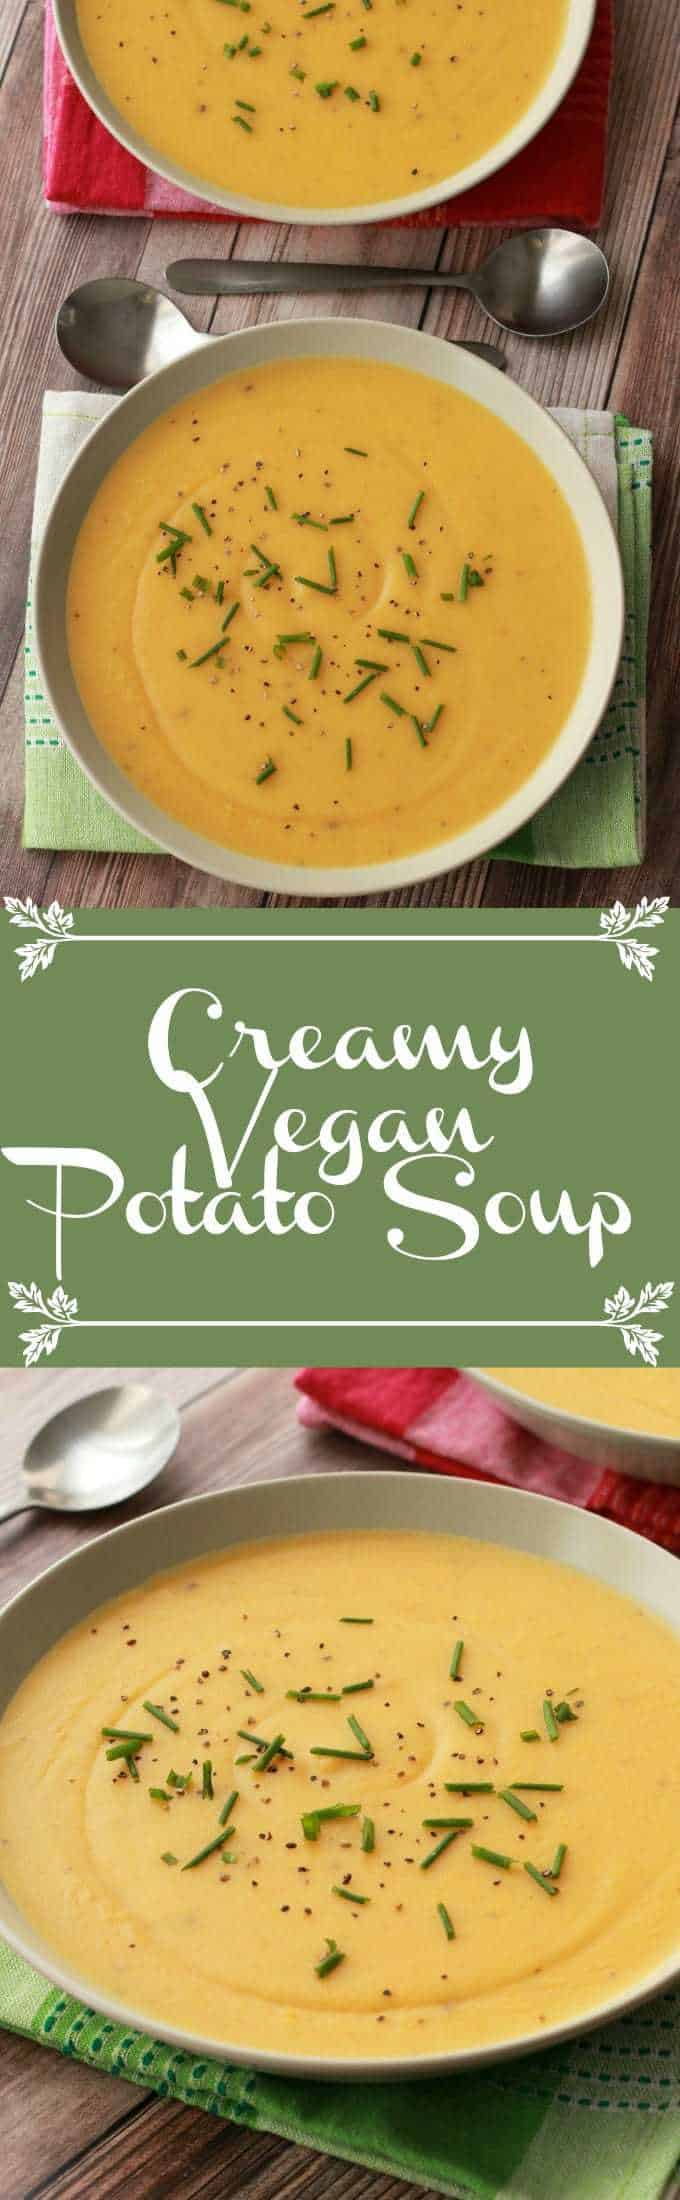 Creamy vegan potato soup! So hearty and satisfying you can have it as an entree! #vegan #lovingitvegan #soup #glutenfree #potatosoup